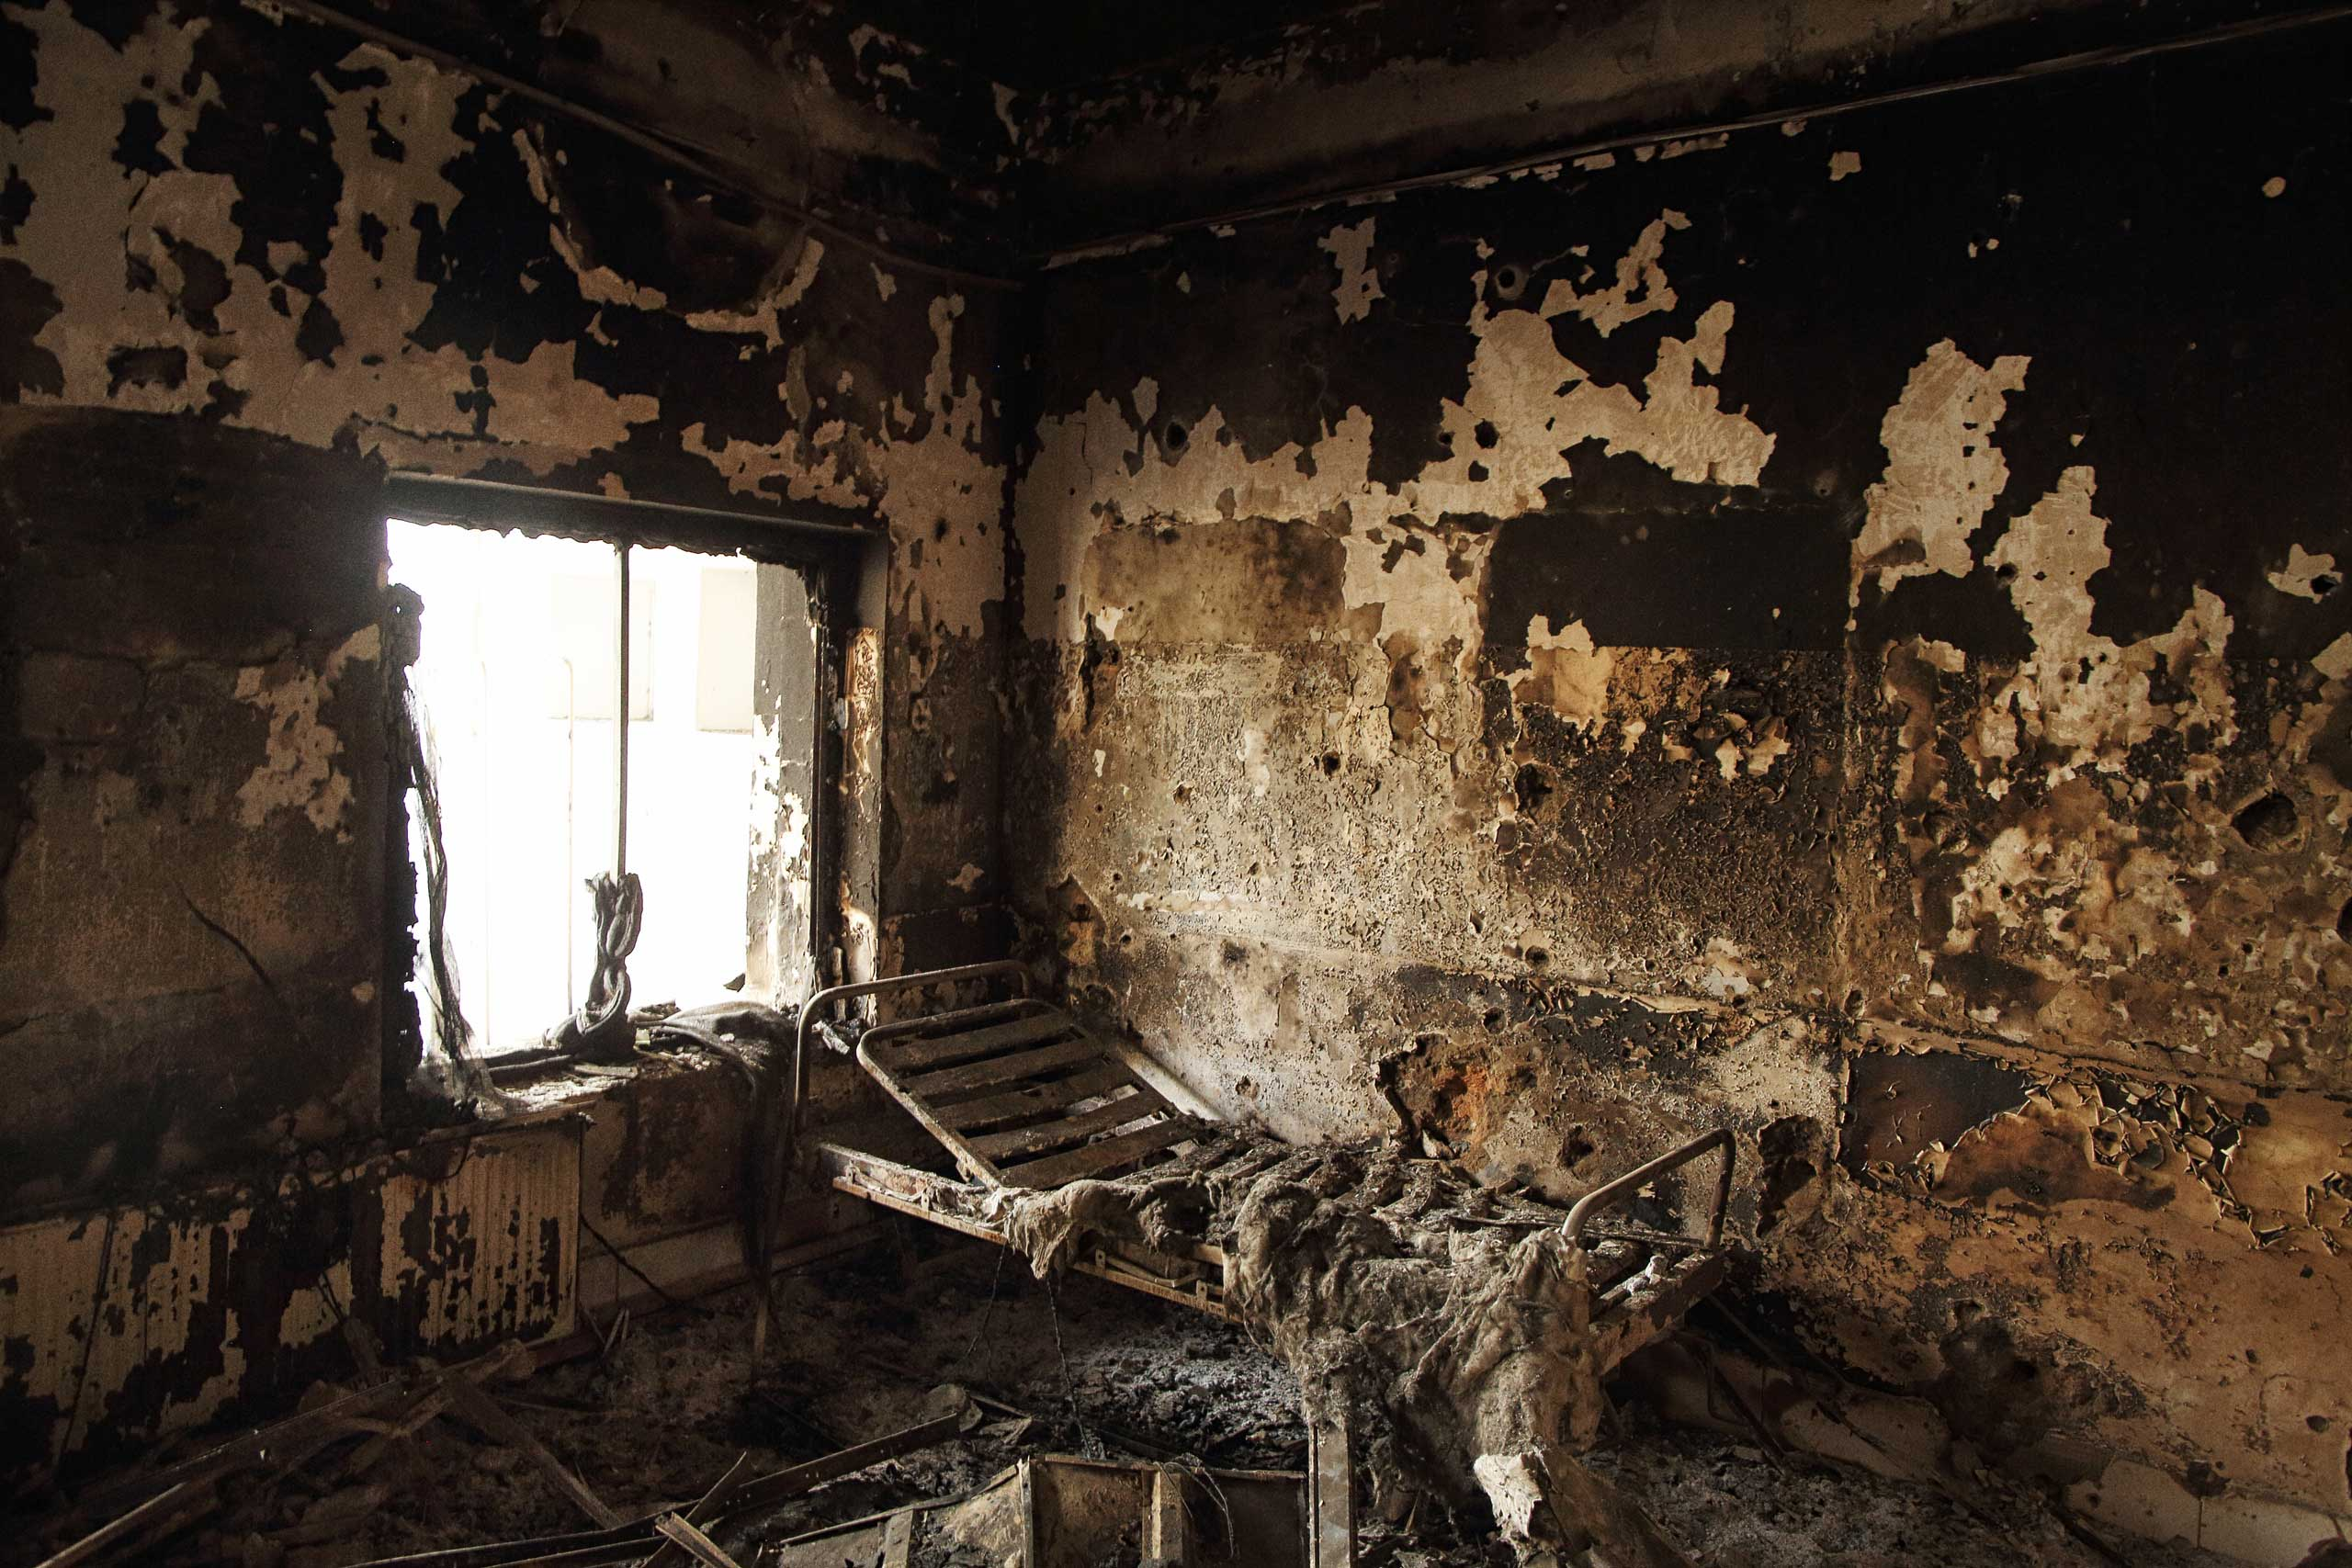 Foreign Policy: Inside the MSF Hospital in KunduzThe remains of a bed frame in a room on eastern wing of the main Outpatient Department building.